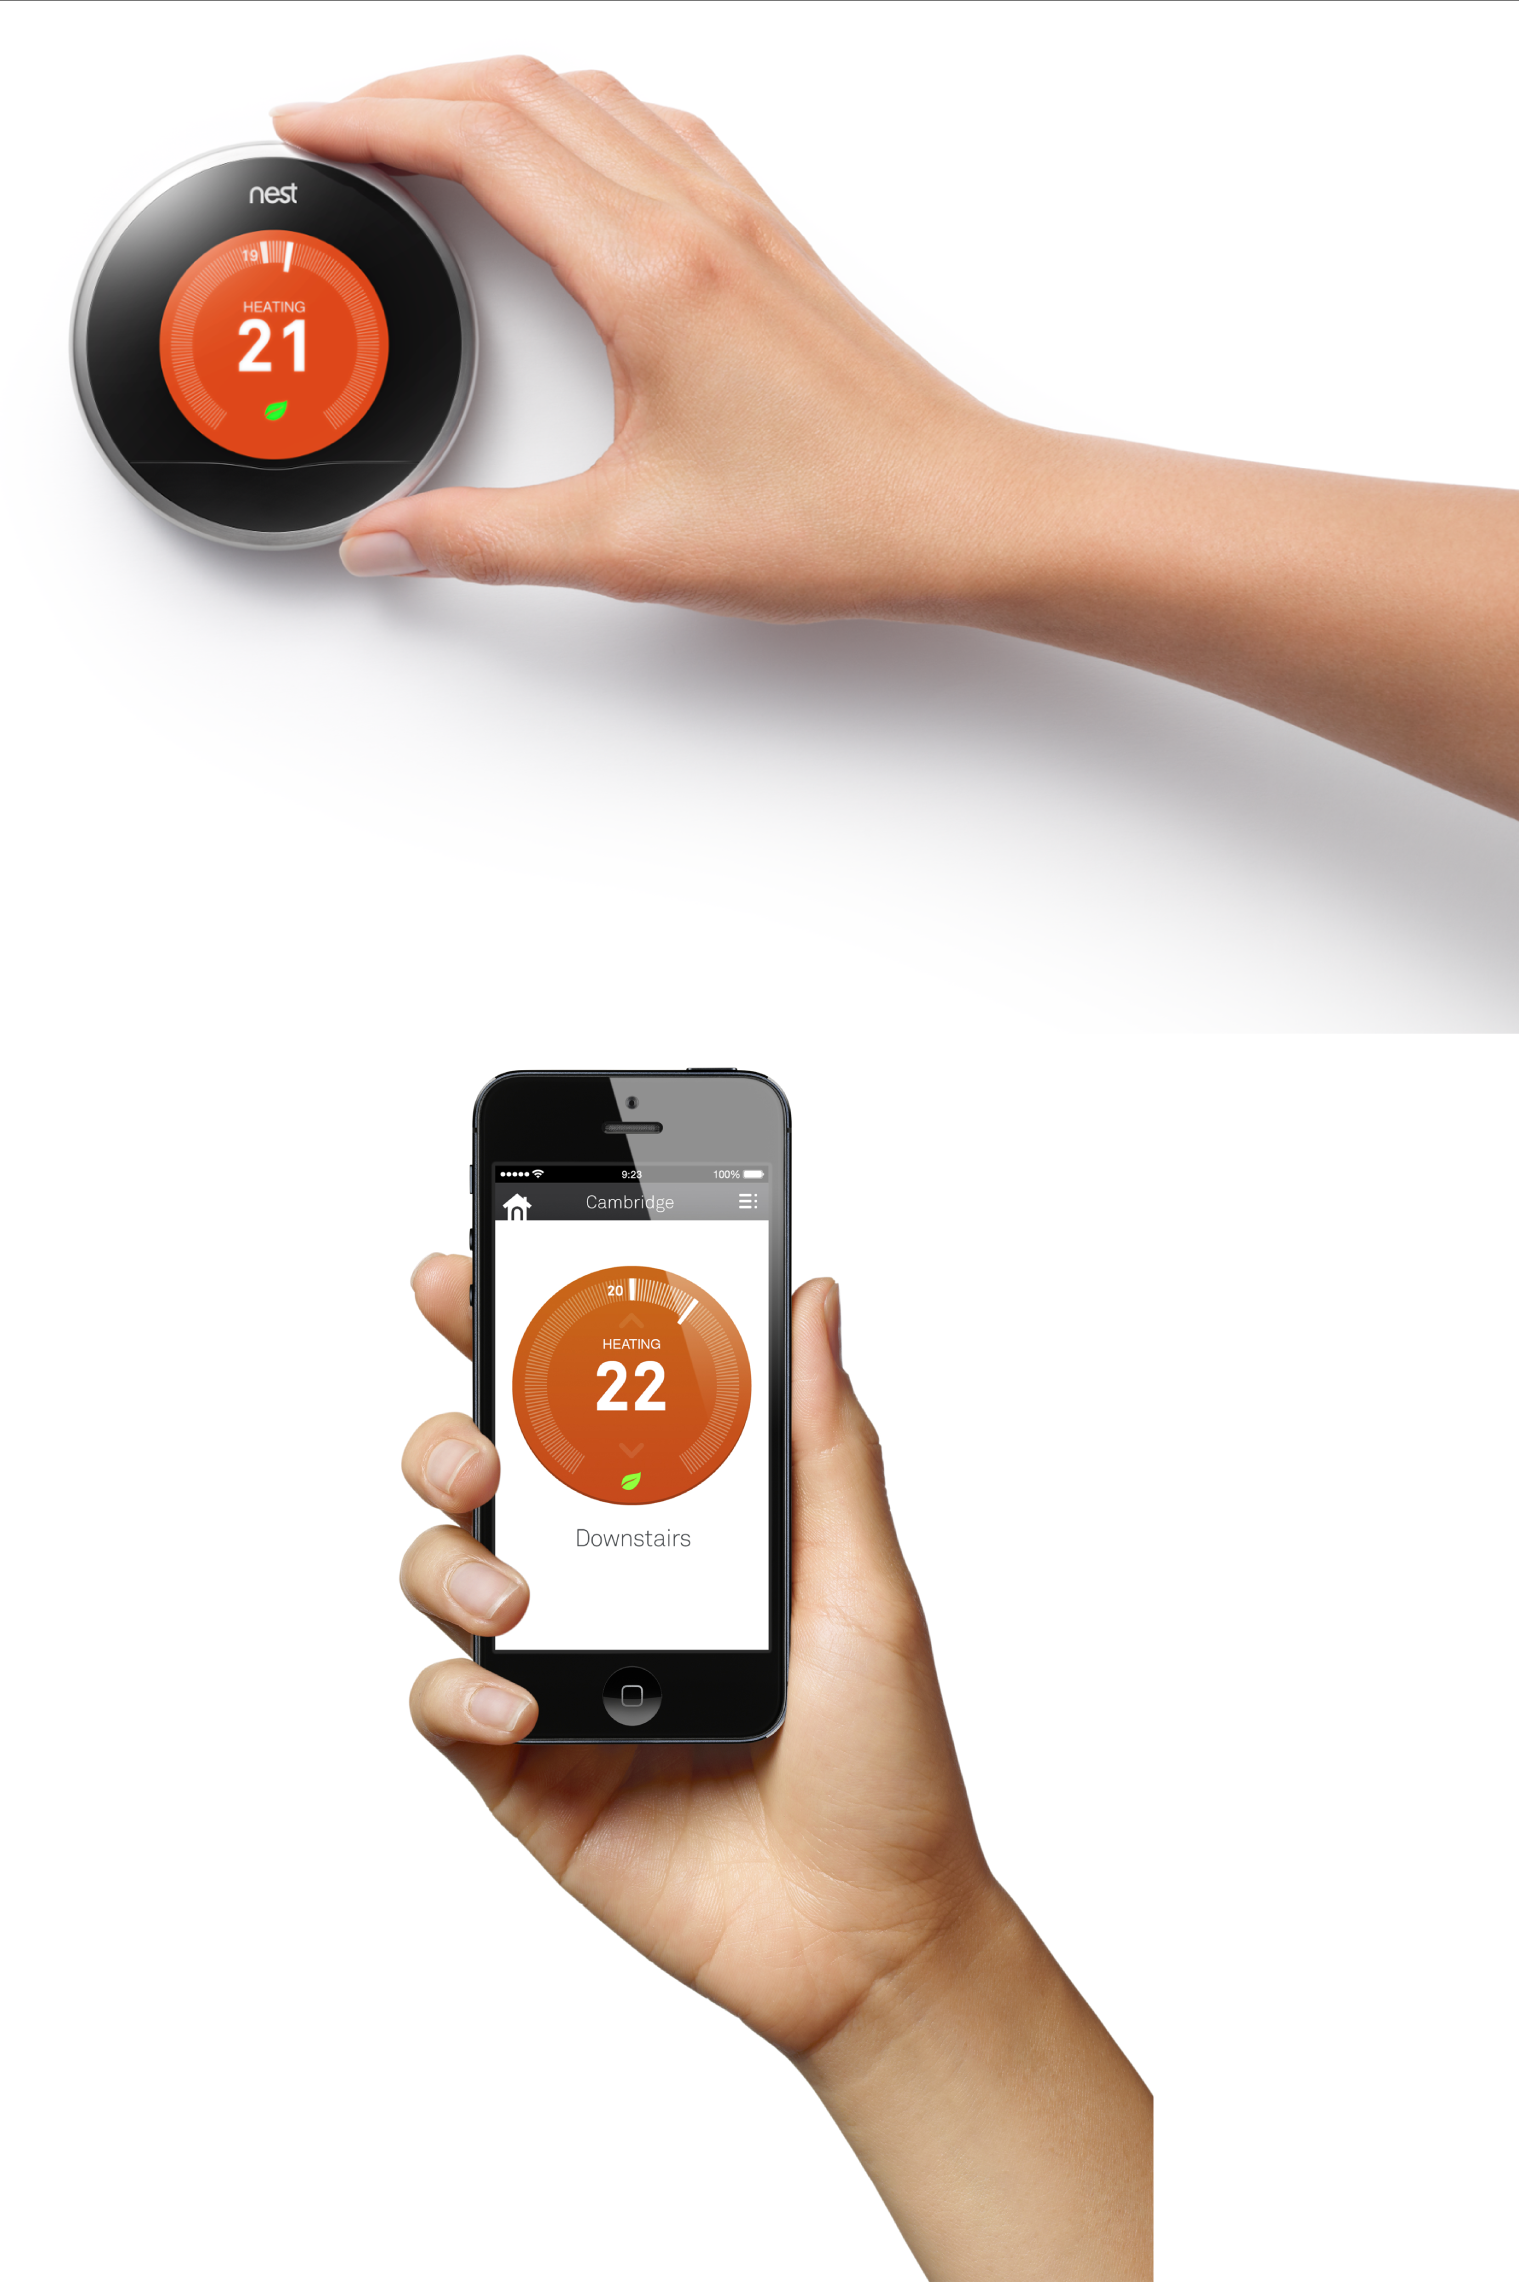 "The Nest thermostat's primary user input method is a rotating bezel. But the smartphone app is optimized for tapping: it does not simulate dragging a fake bezel. The thermostat and app use complementary visual styling—tapping the smartphone interface produces the same subtle ""click"" as rotating the bezel on the physical device. This helps the interfaces feel like part of the same family (images: Nest)."